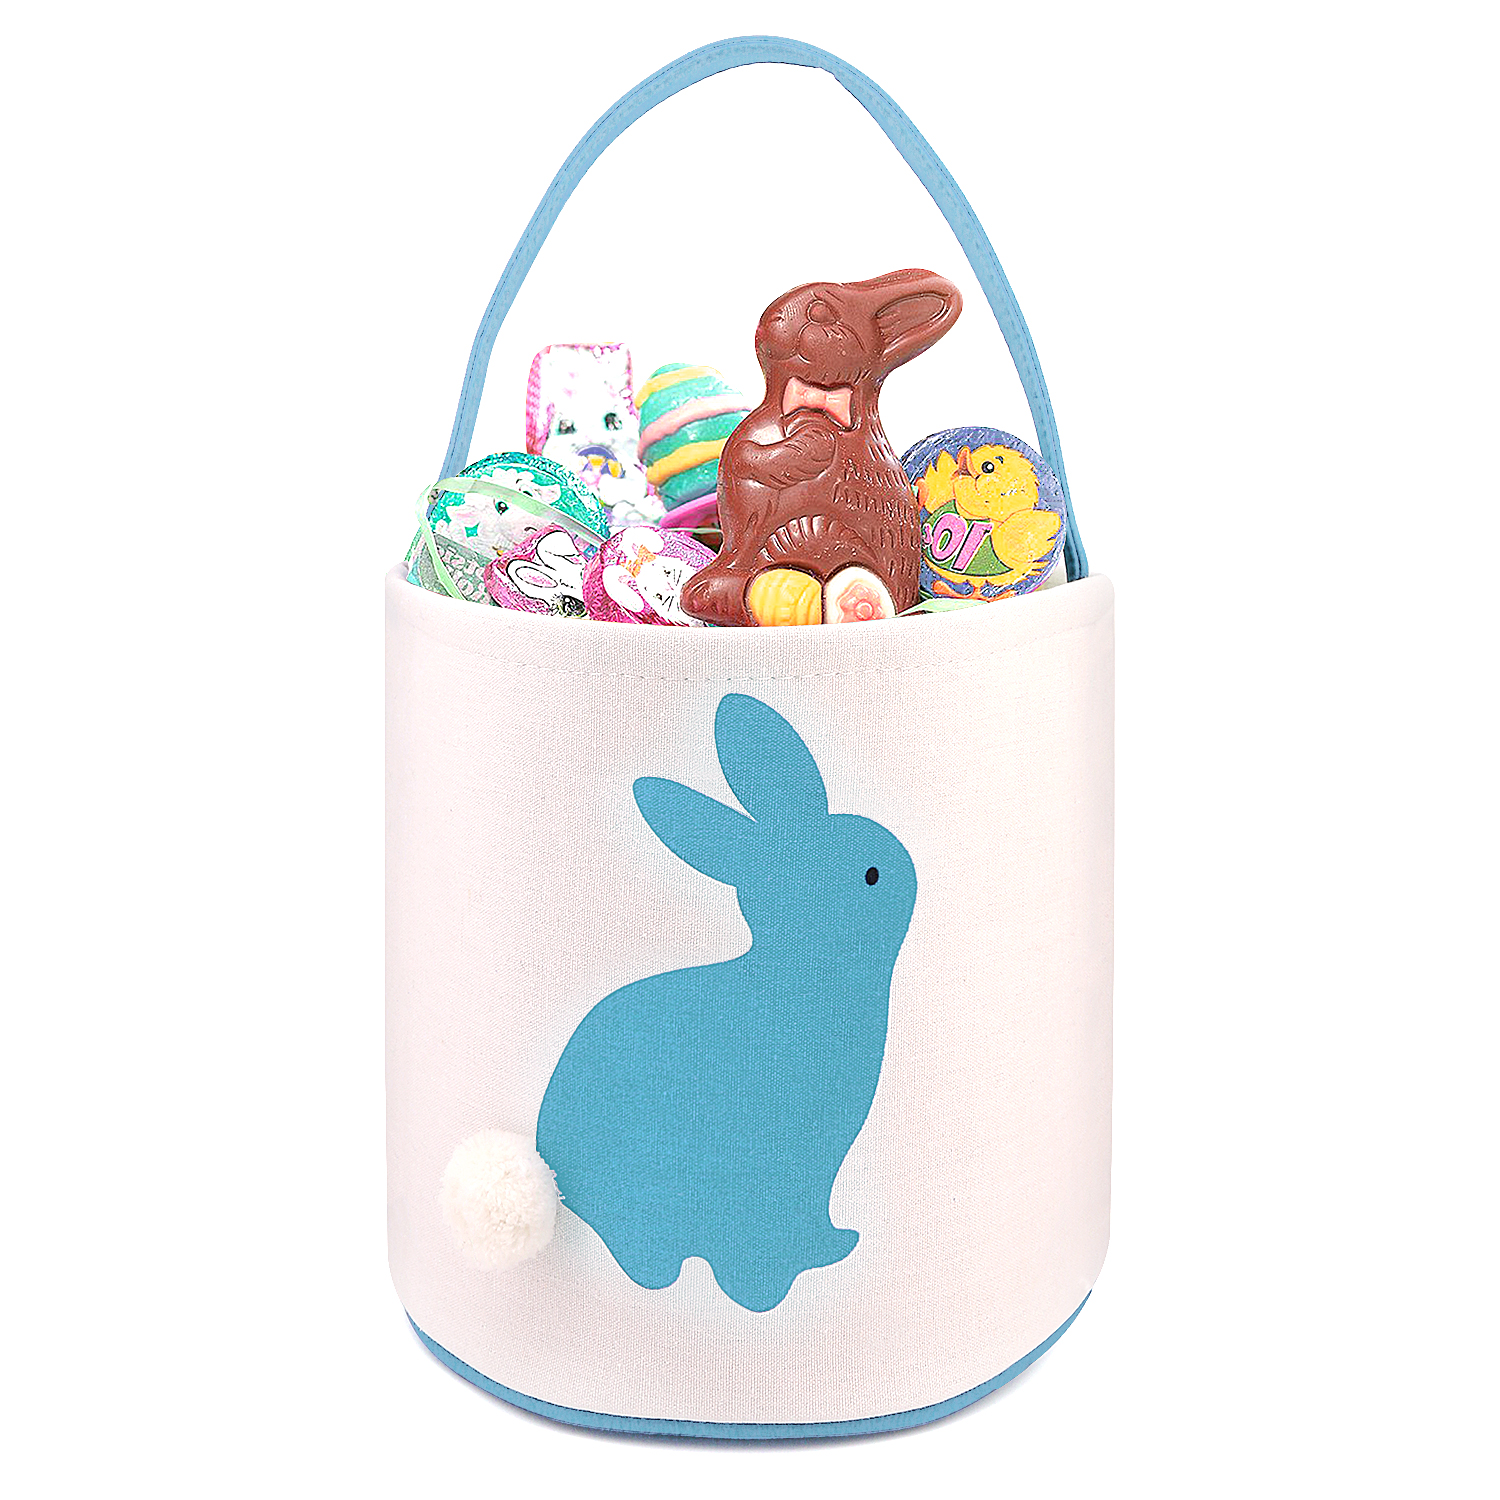 01e6e3d52027 Cylinder Bunny Bag Easter Bag Dual Layer Canvas Bag With Bunny Design  Easter Egg Hunt Basket Carrying Eggs Gifts for Bunny Fans Holding Toys  Books ...